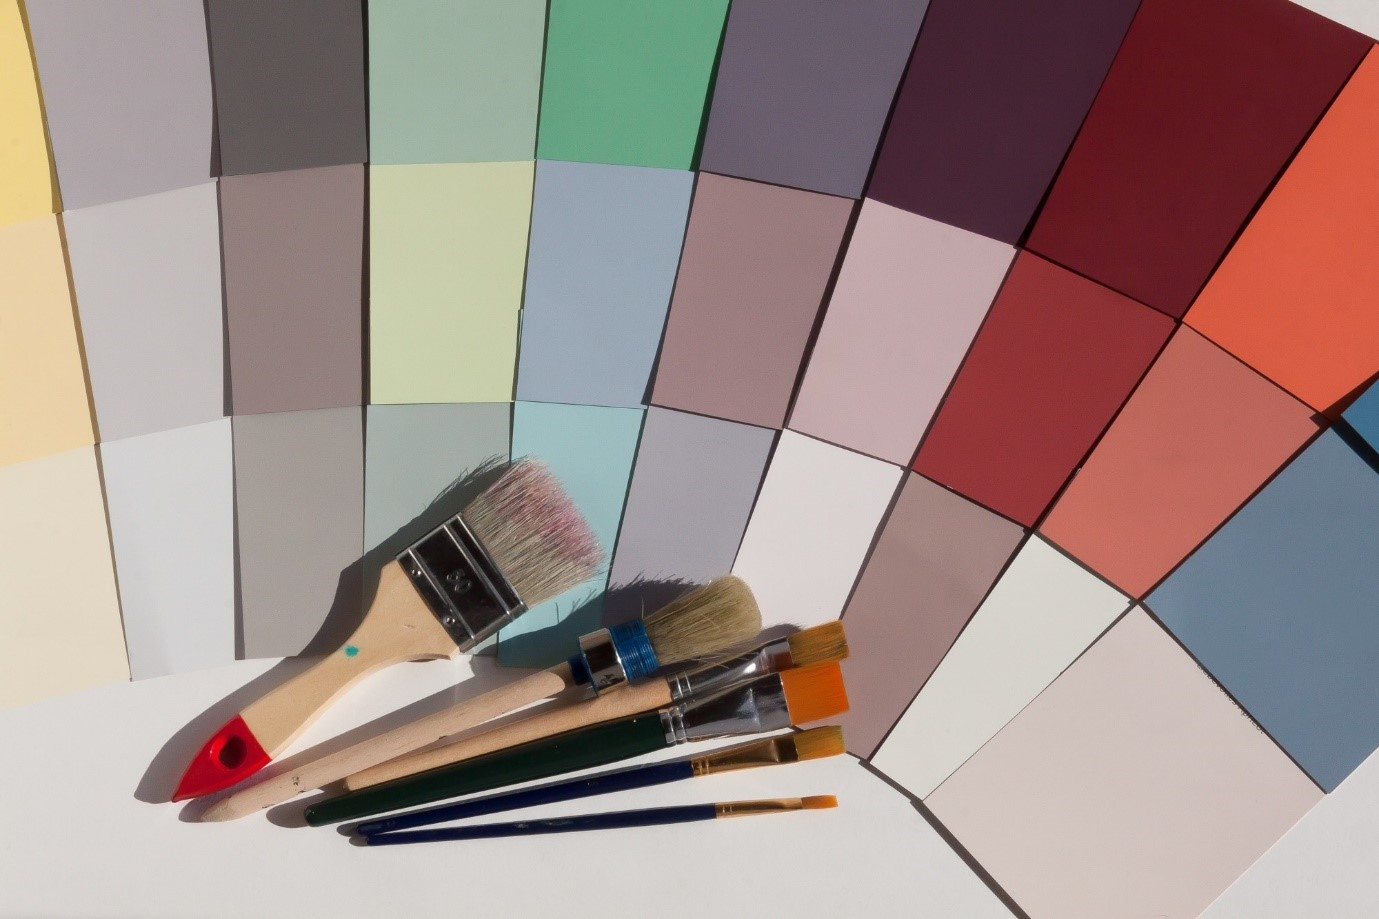 image - 5 Interior Color Schemes That'll Make Your Home Bistro More Inviting